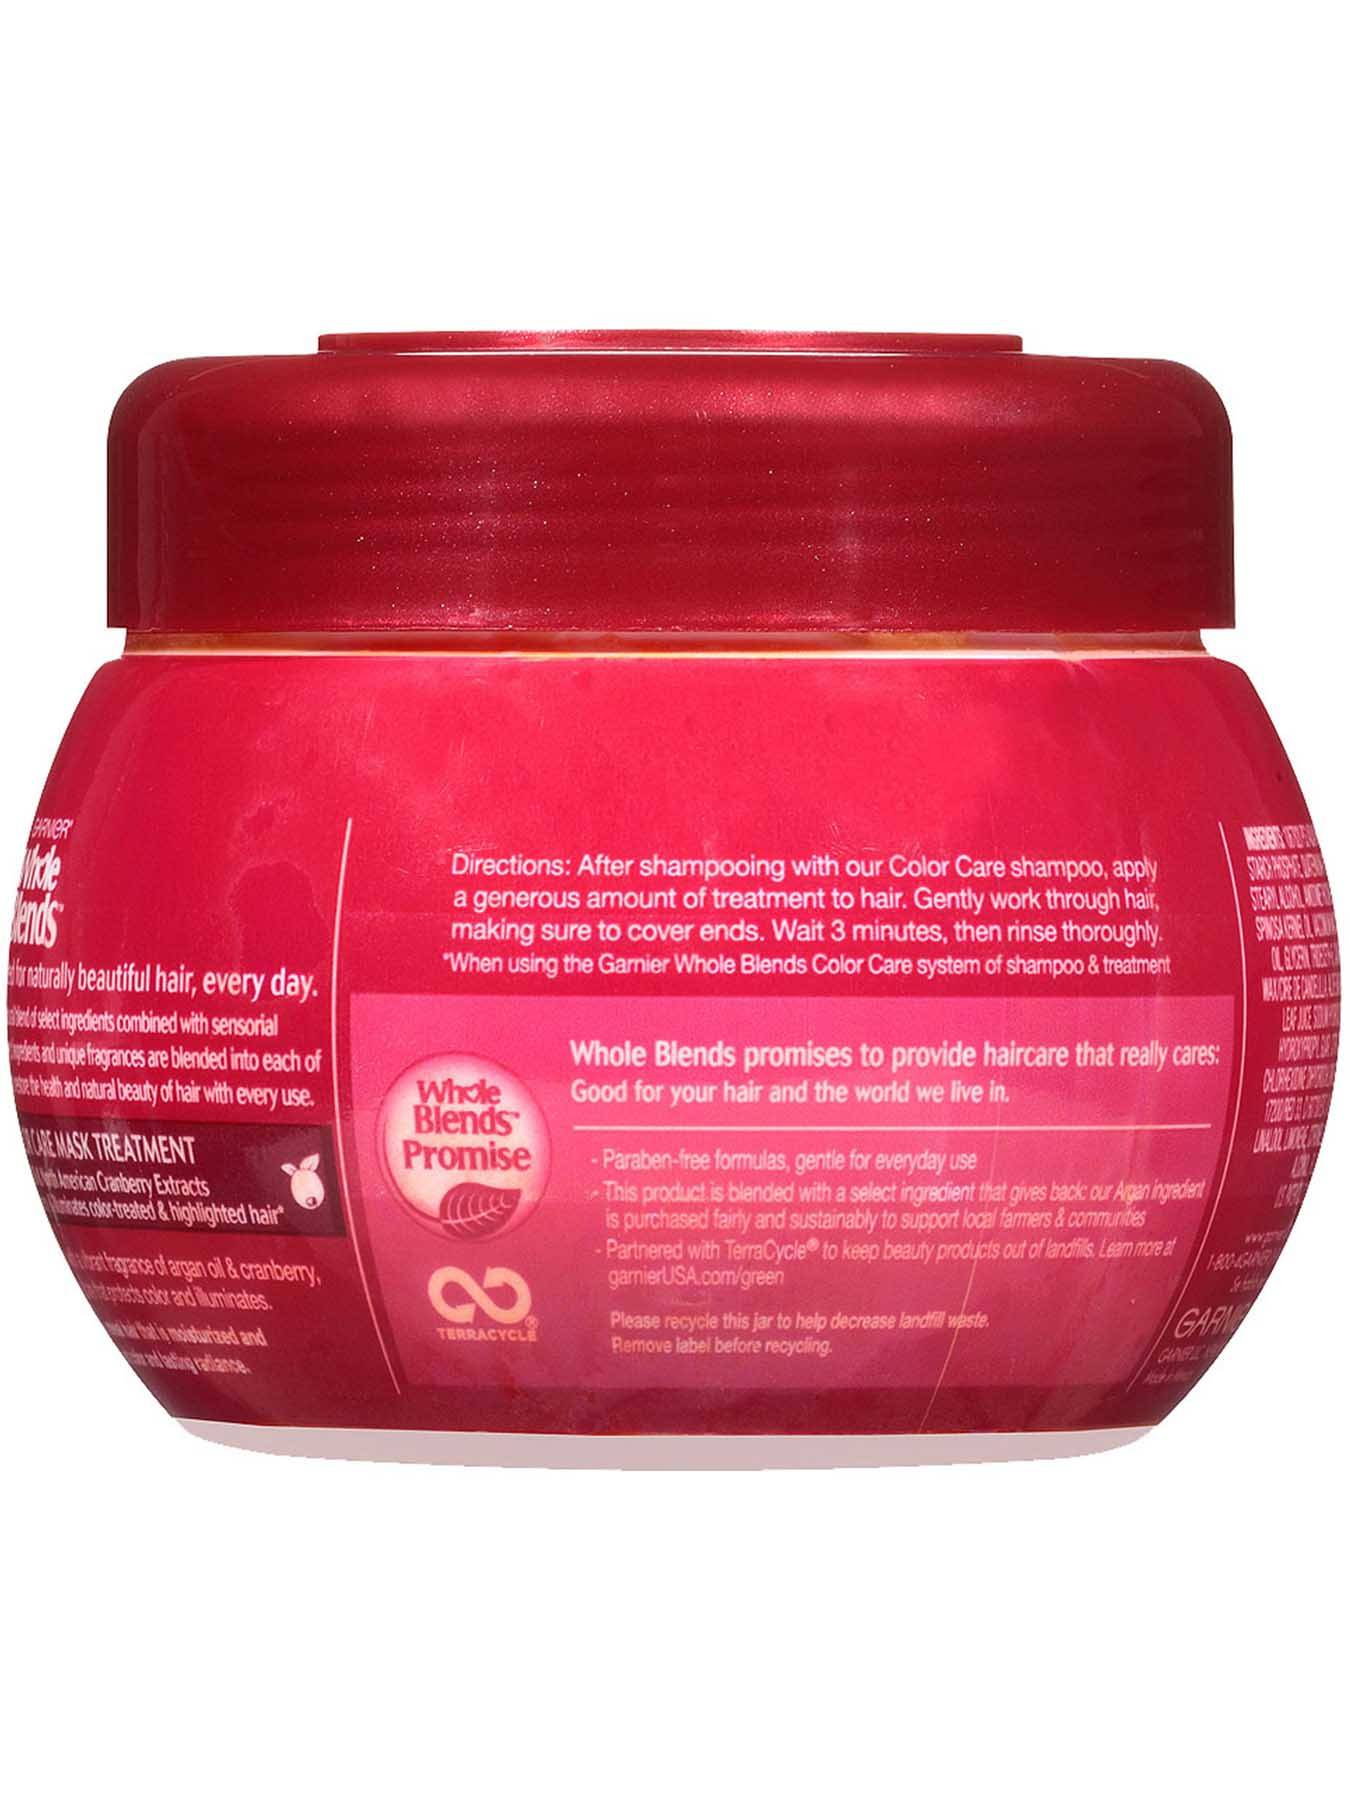 Back view of Color Care Mask with Argan Oil and Cranberry Extracts.